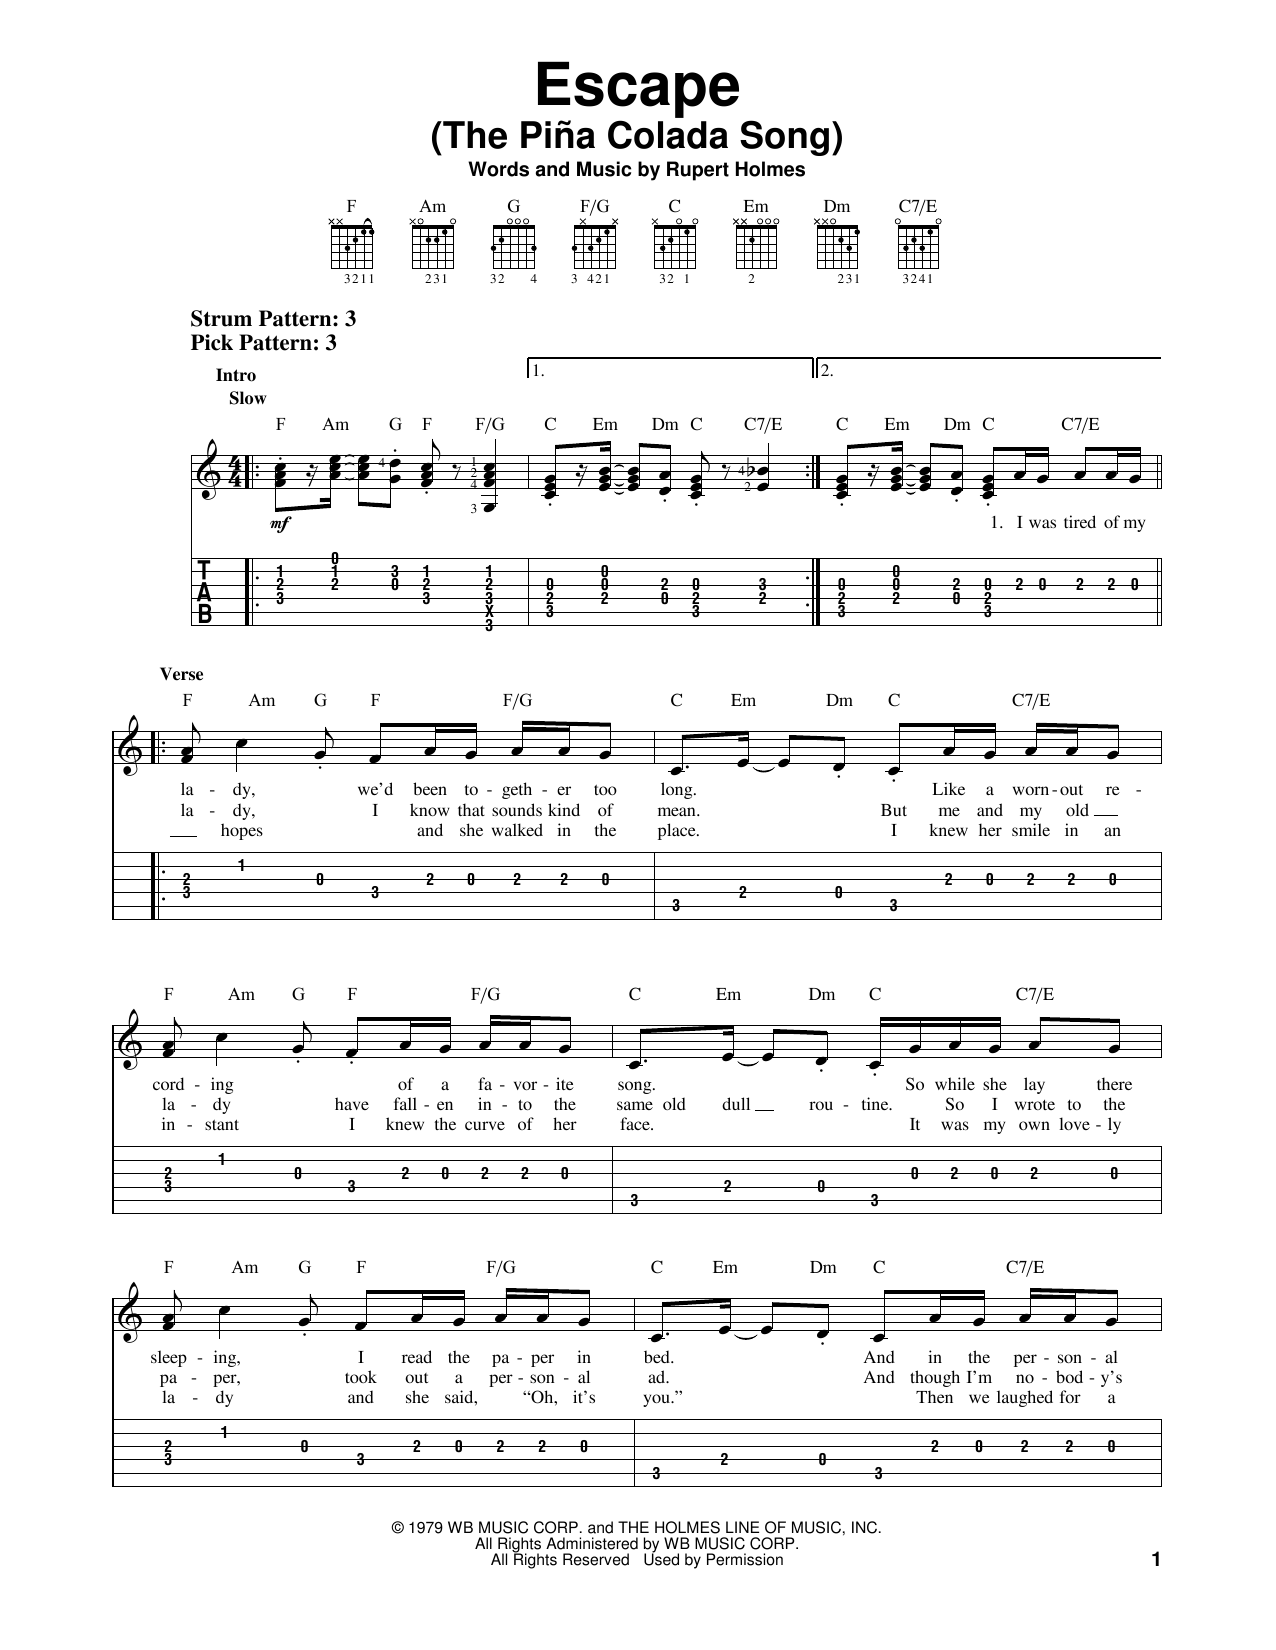 Escape (The Pina Colada Song) Sheet Music